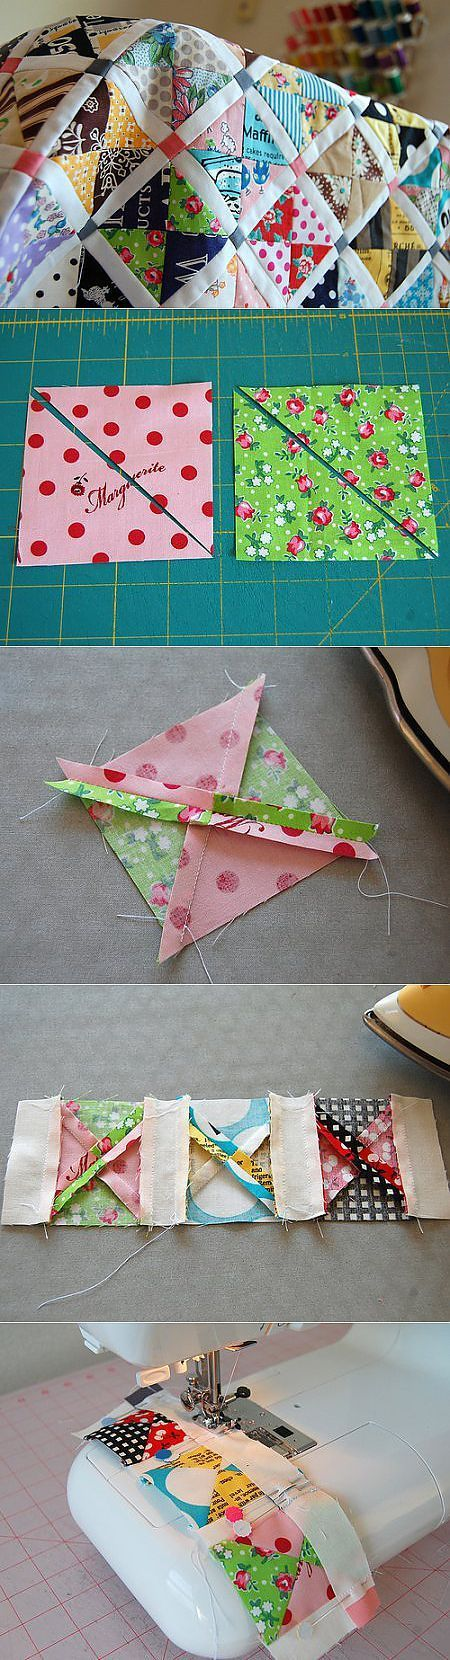 Quilting for beginners: master class in sewing of a cover